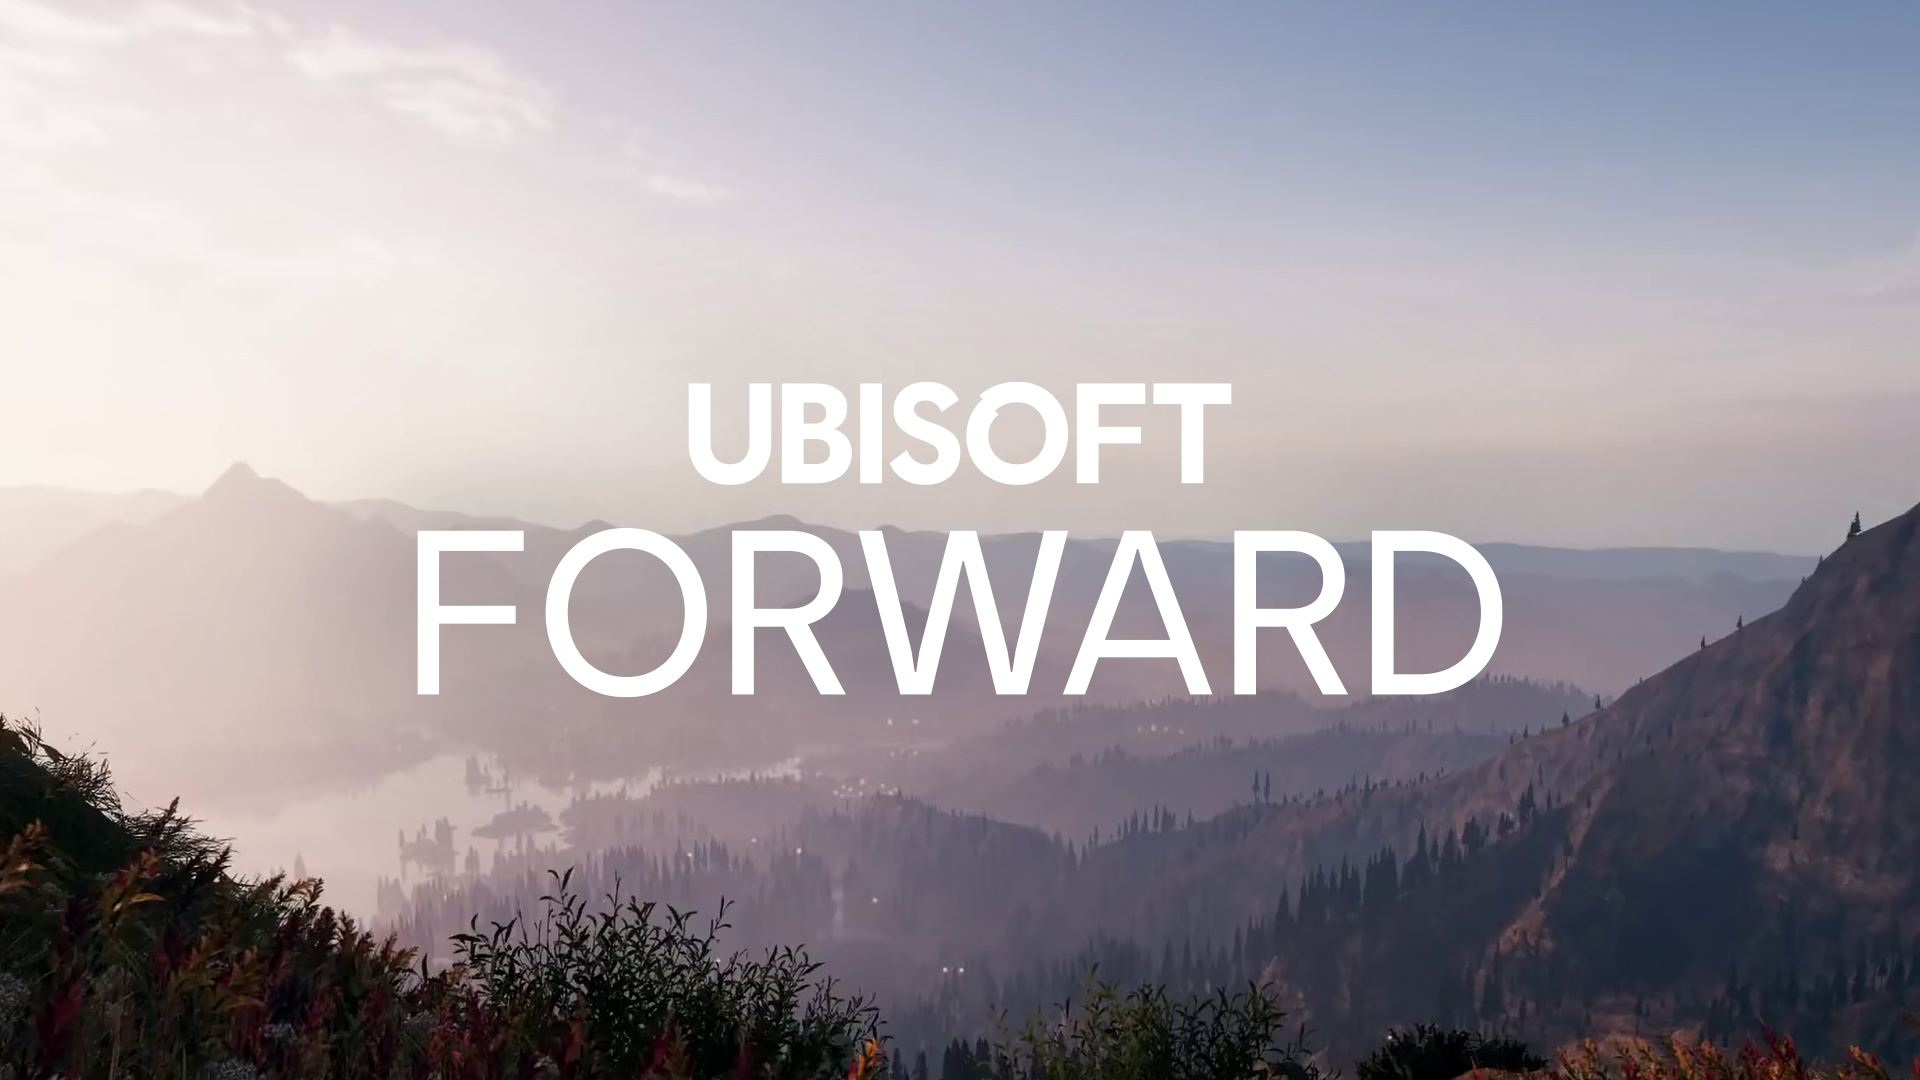 Ubisoft Forward Announced for July 12